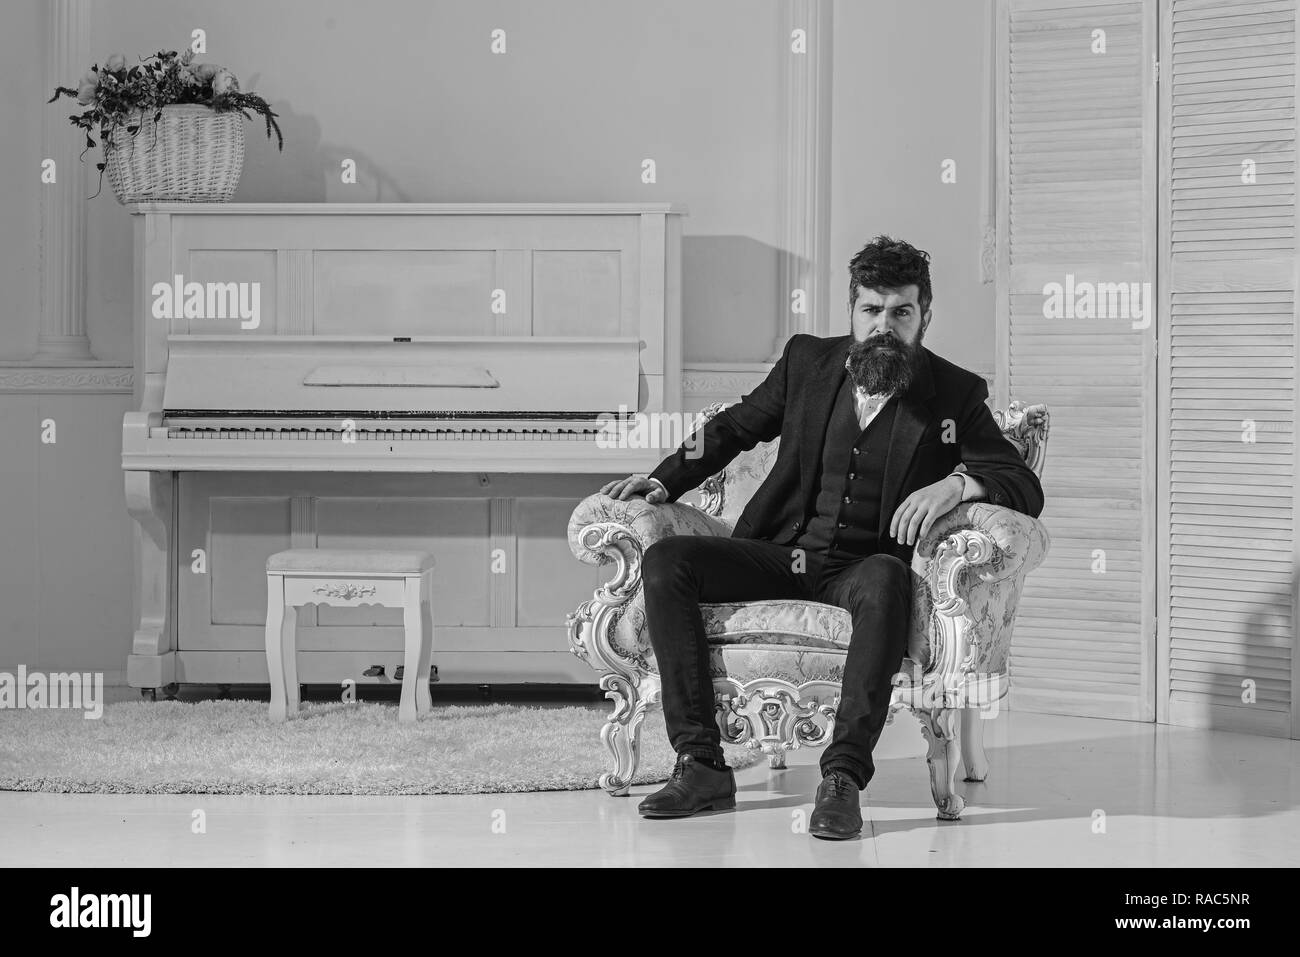 Macho attractive and elegant on serious, thoughtful face sitting on old fashioned armchair. Wealth and richness concept. Man with beard and mustache wearing classic suit, stylish fashionable outfit. - Stock Image